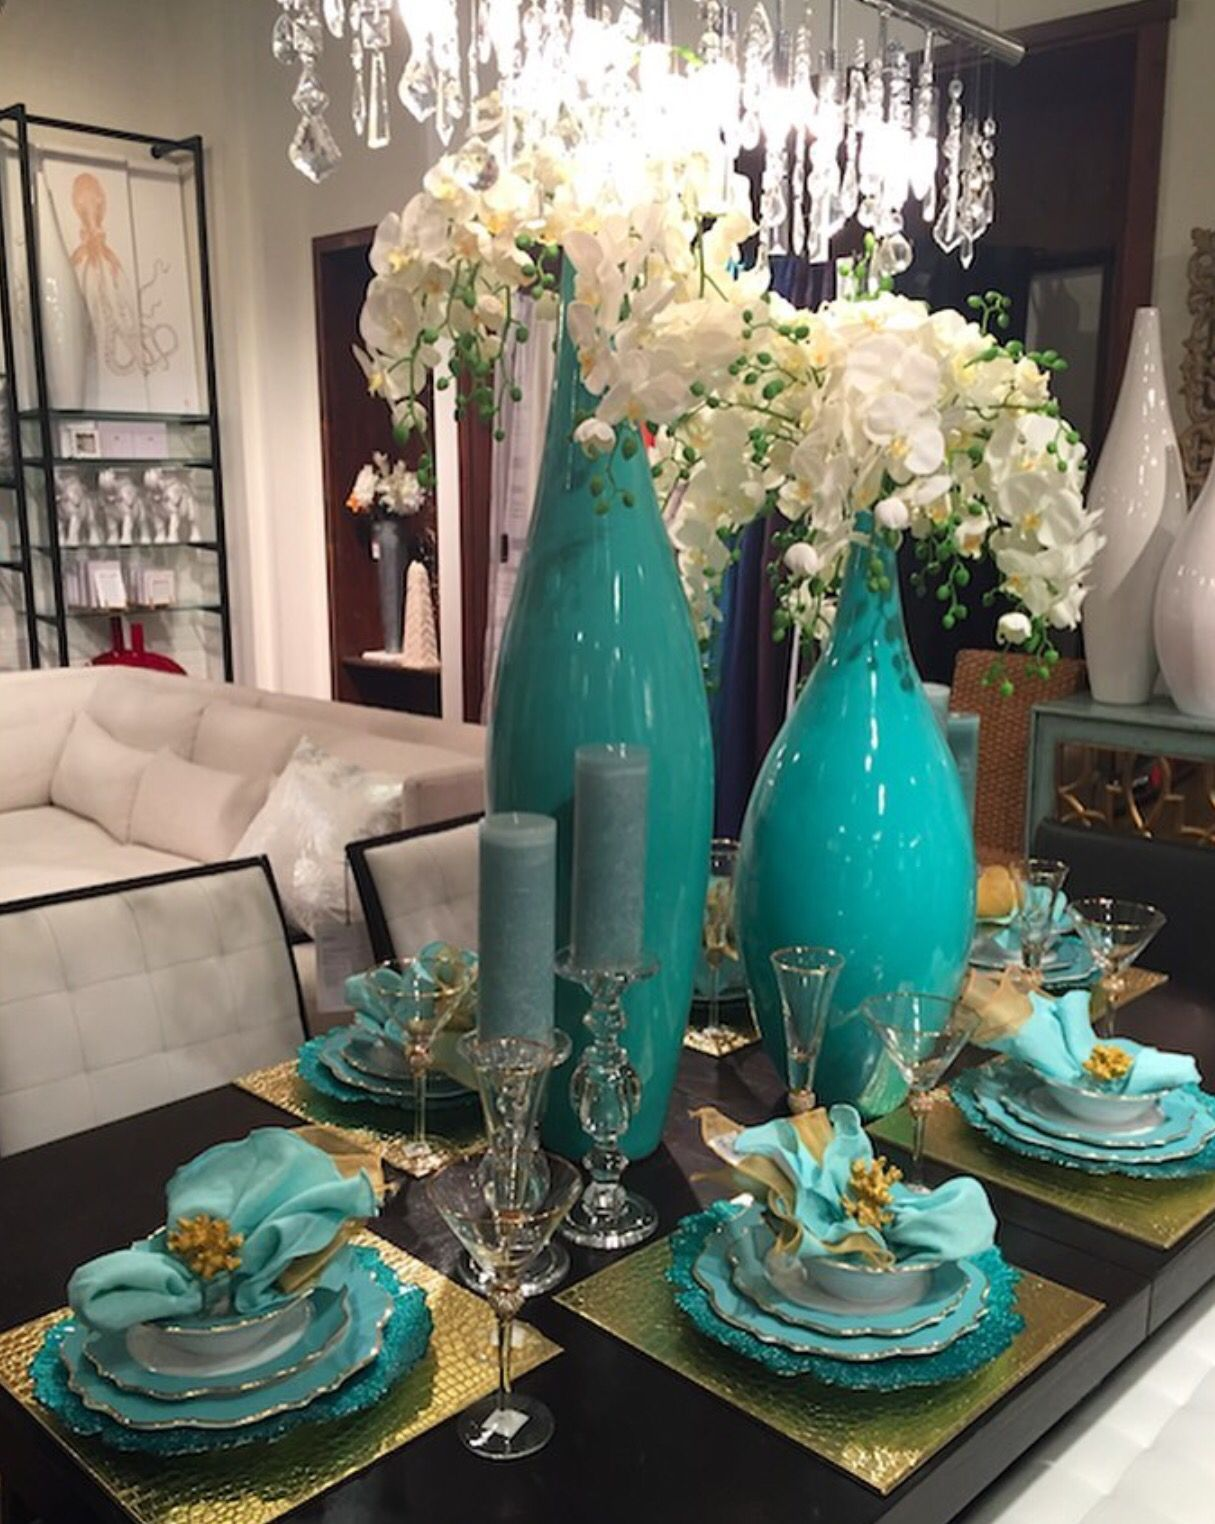 Turquoise Vases With White Orchids Amazing Centerpiece Dining Room Table Decor Dinning Table Decor Table Decorations